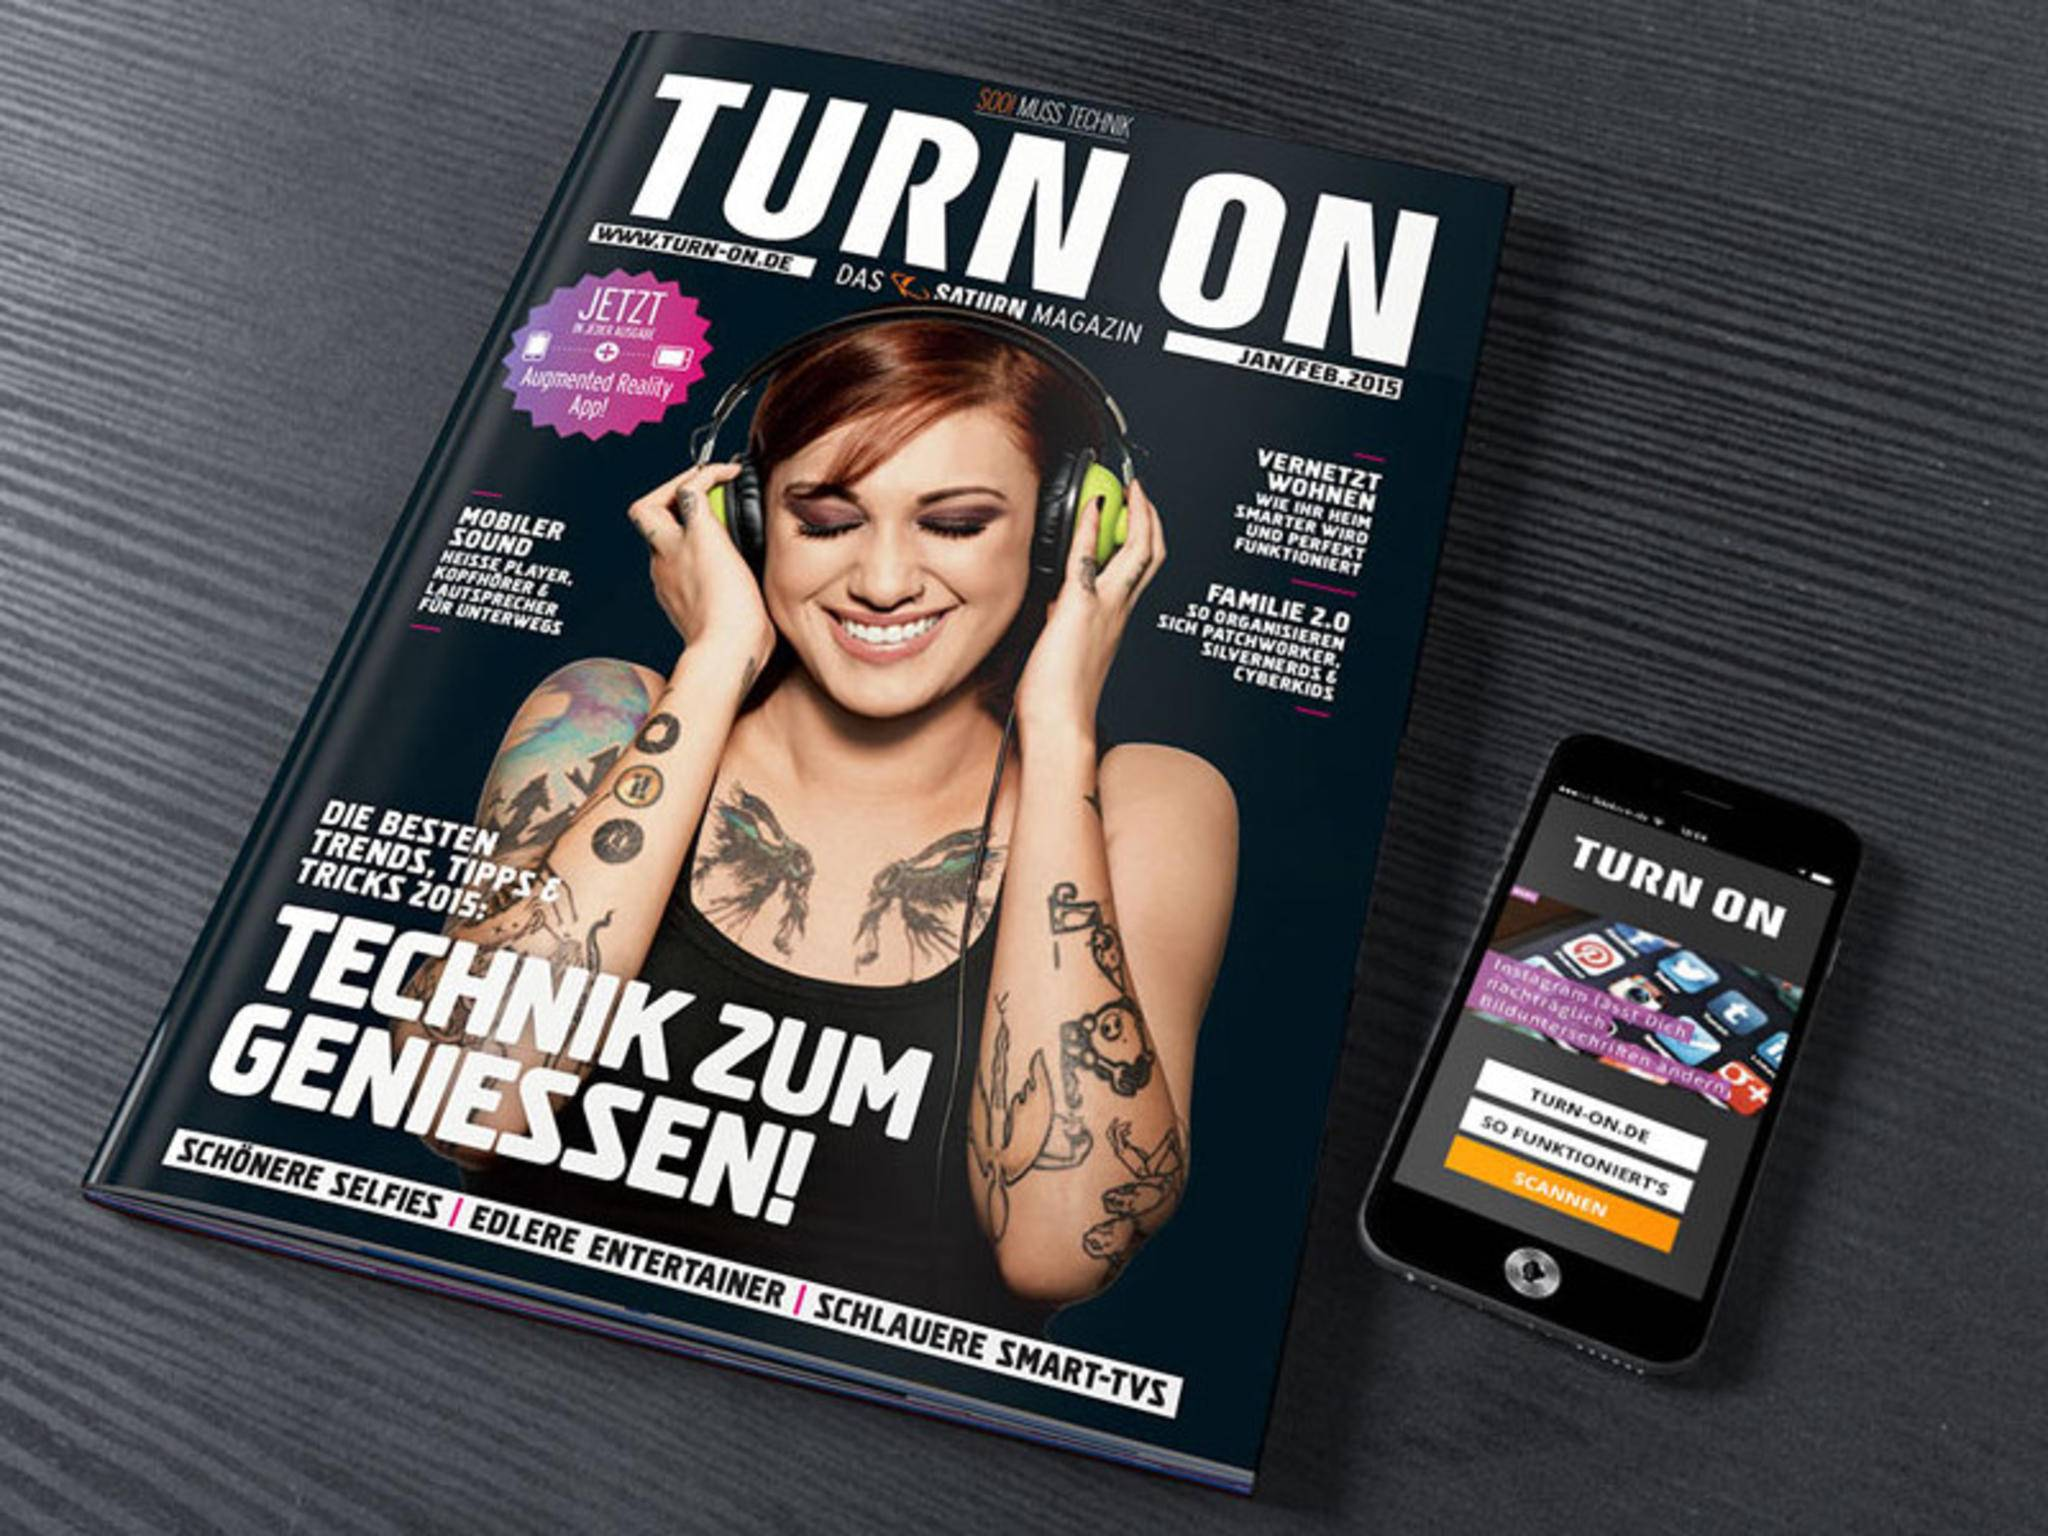 TURN ON Magazin App